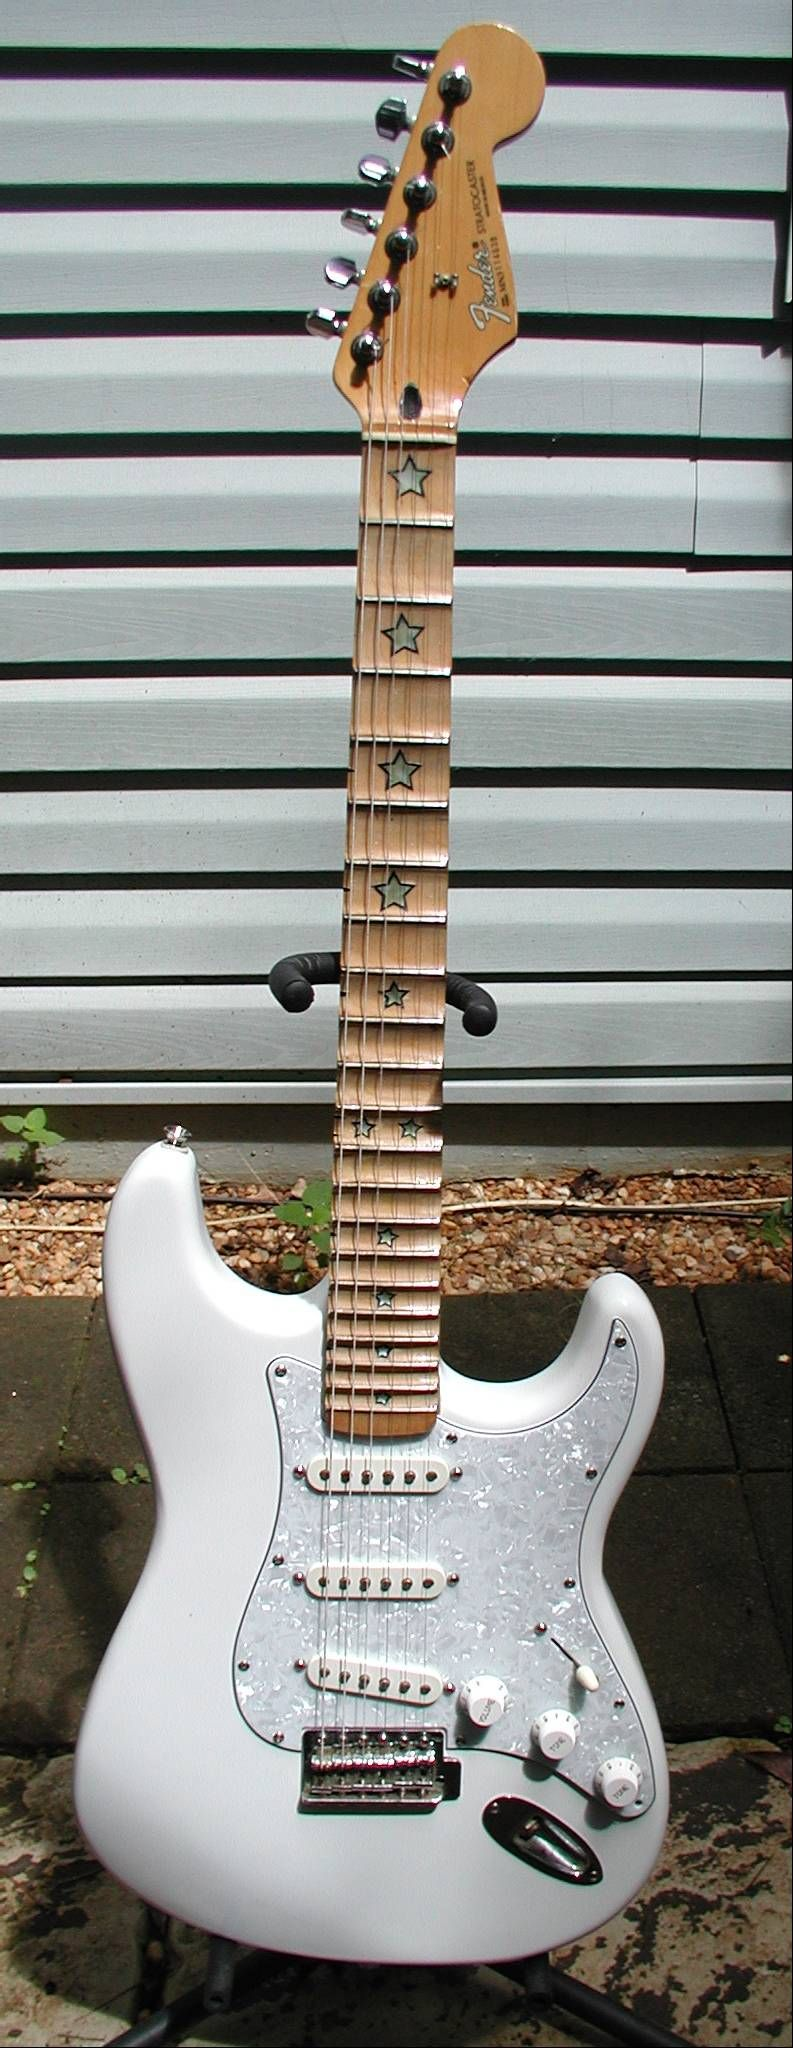 FENDER MIM STRATOCASTER  WHITE WITH PEARLOID PICKGUARD, I